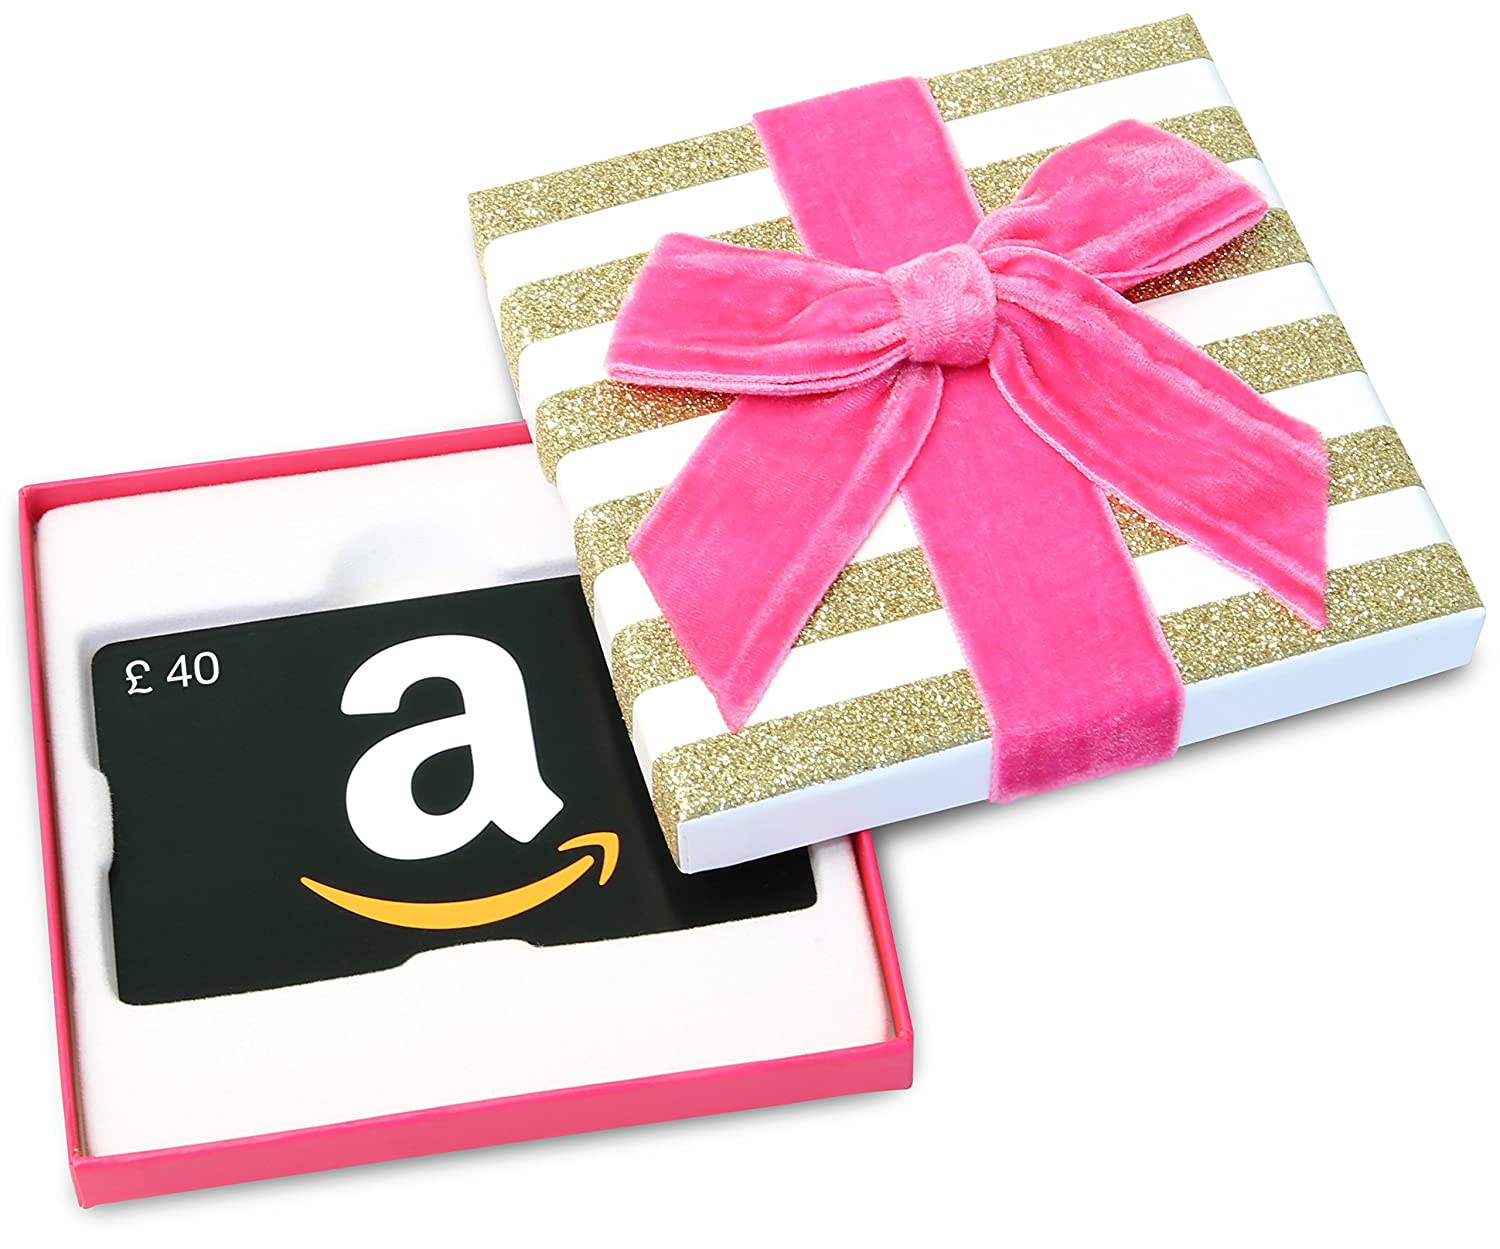 Amazon.co.uk Gift Card in a Gift Box - FREE One-Day Delivery Amazon EU S.à.r.l. Fixed